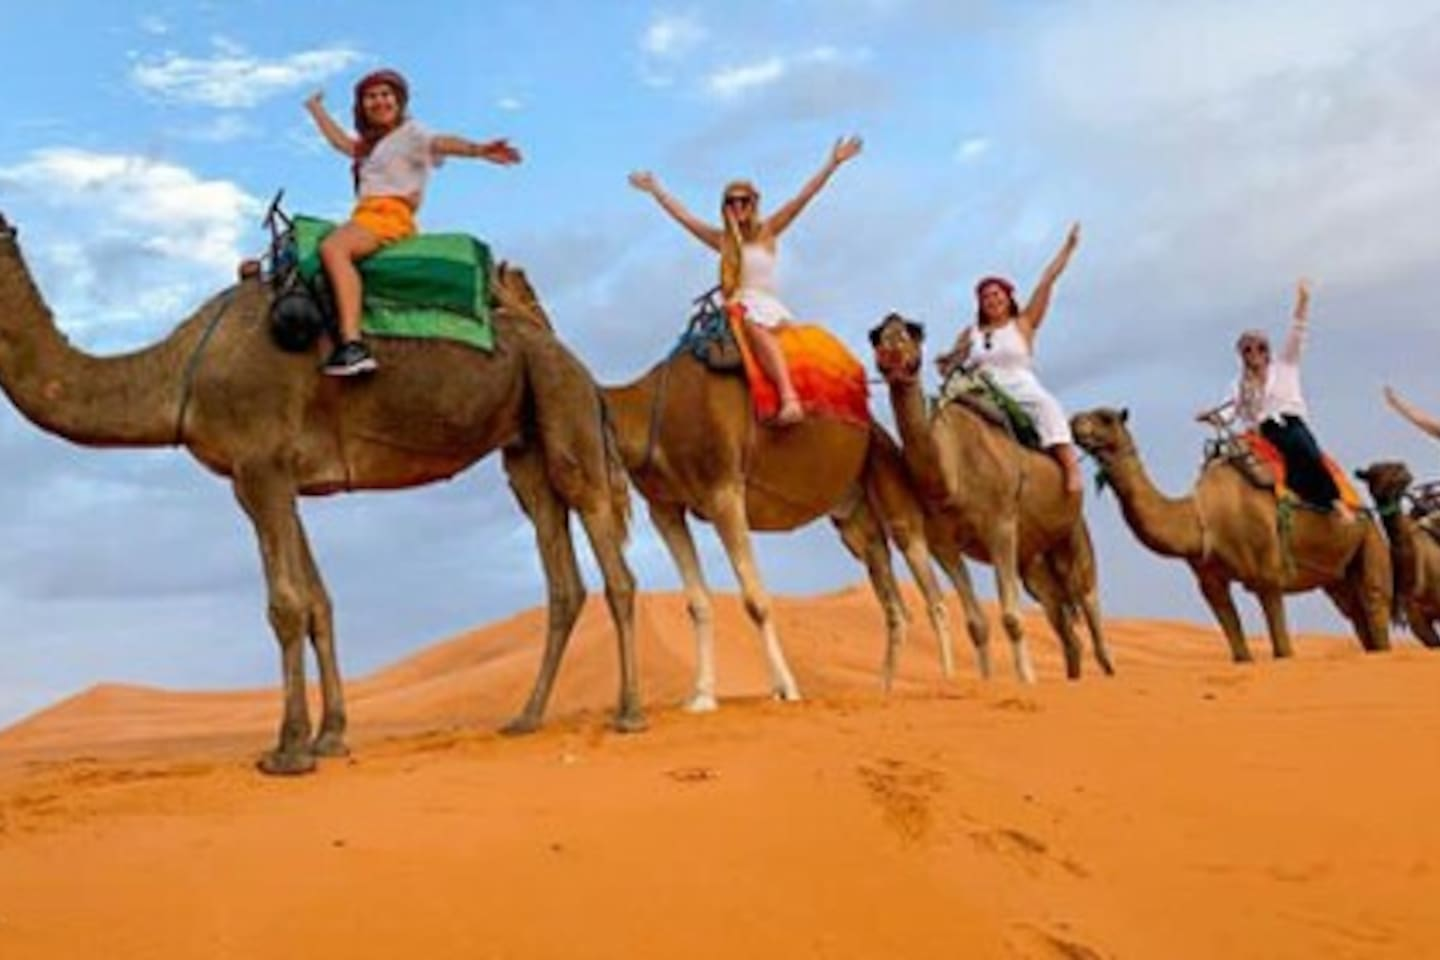 Don't worry about riding the camels